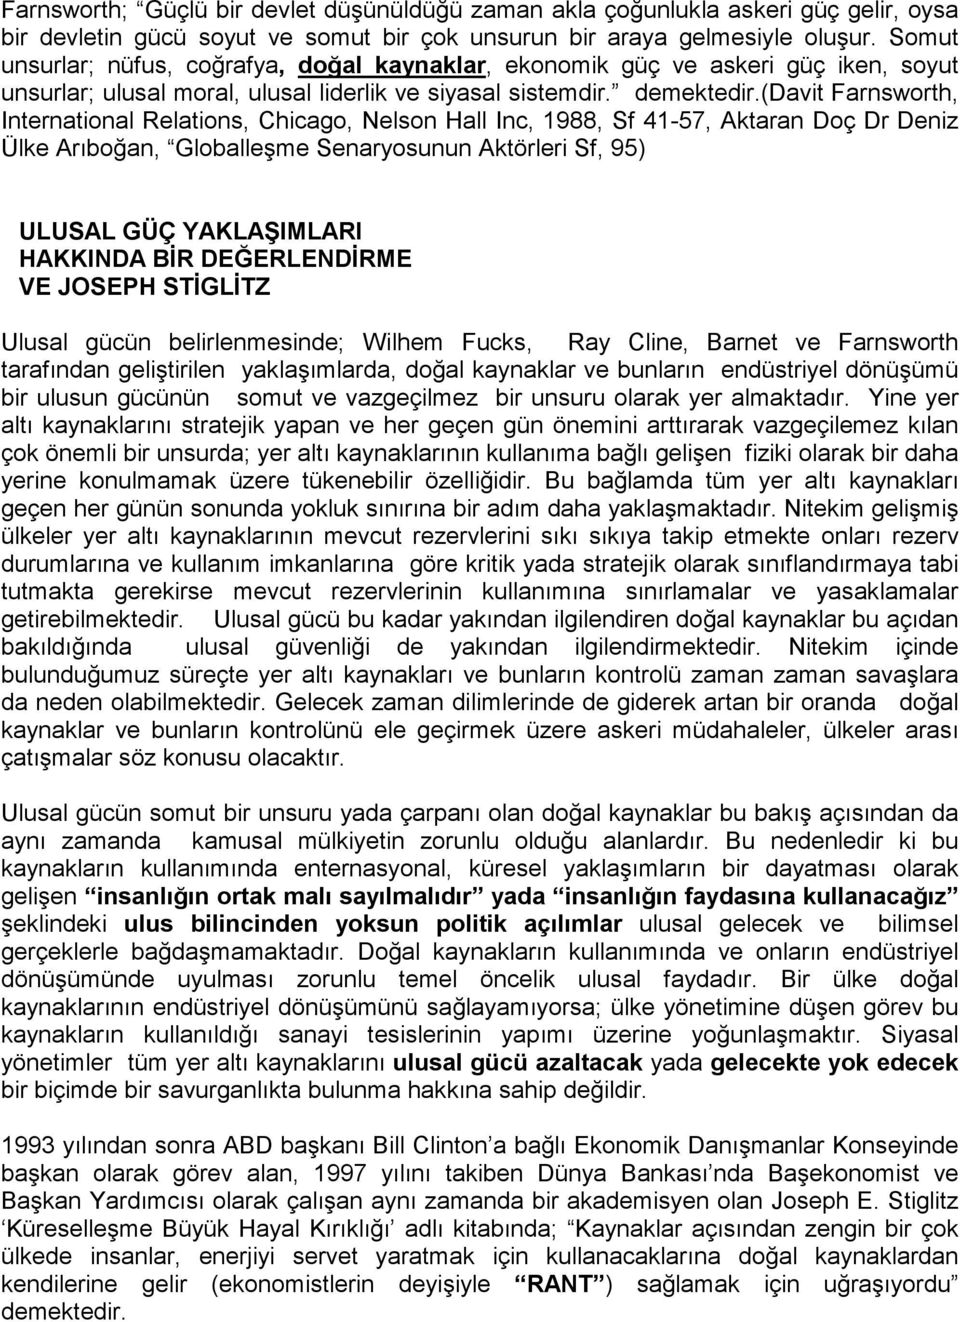 (davit Farnsworth, International Relations, Chicago, Nelson Hall Inc, 1988, Sf 41-57, Aktaran Doç Dr Deniz Ülke Arıboğan, Globalleşme Senaryosunun Aktörleri Sf, 95) ULUSAL GÜÇ YAKLAŞIMLARI HAKKINDA